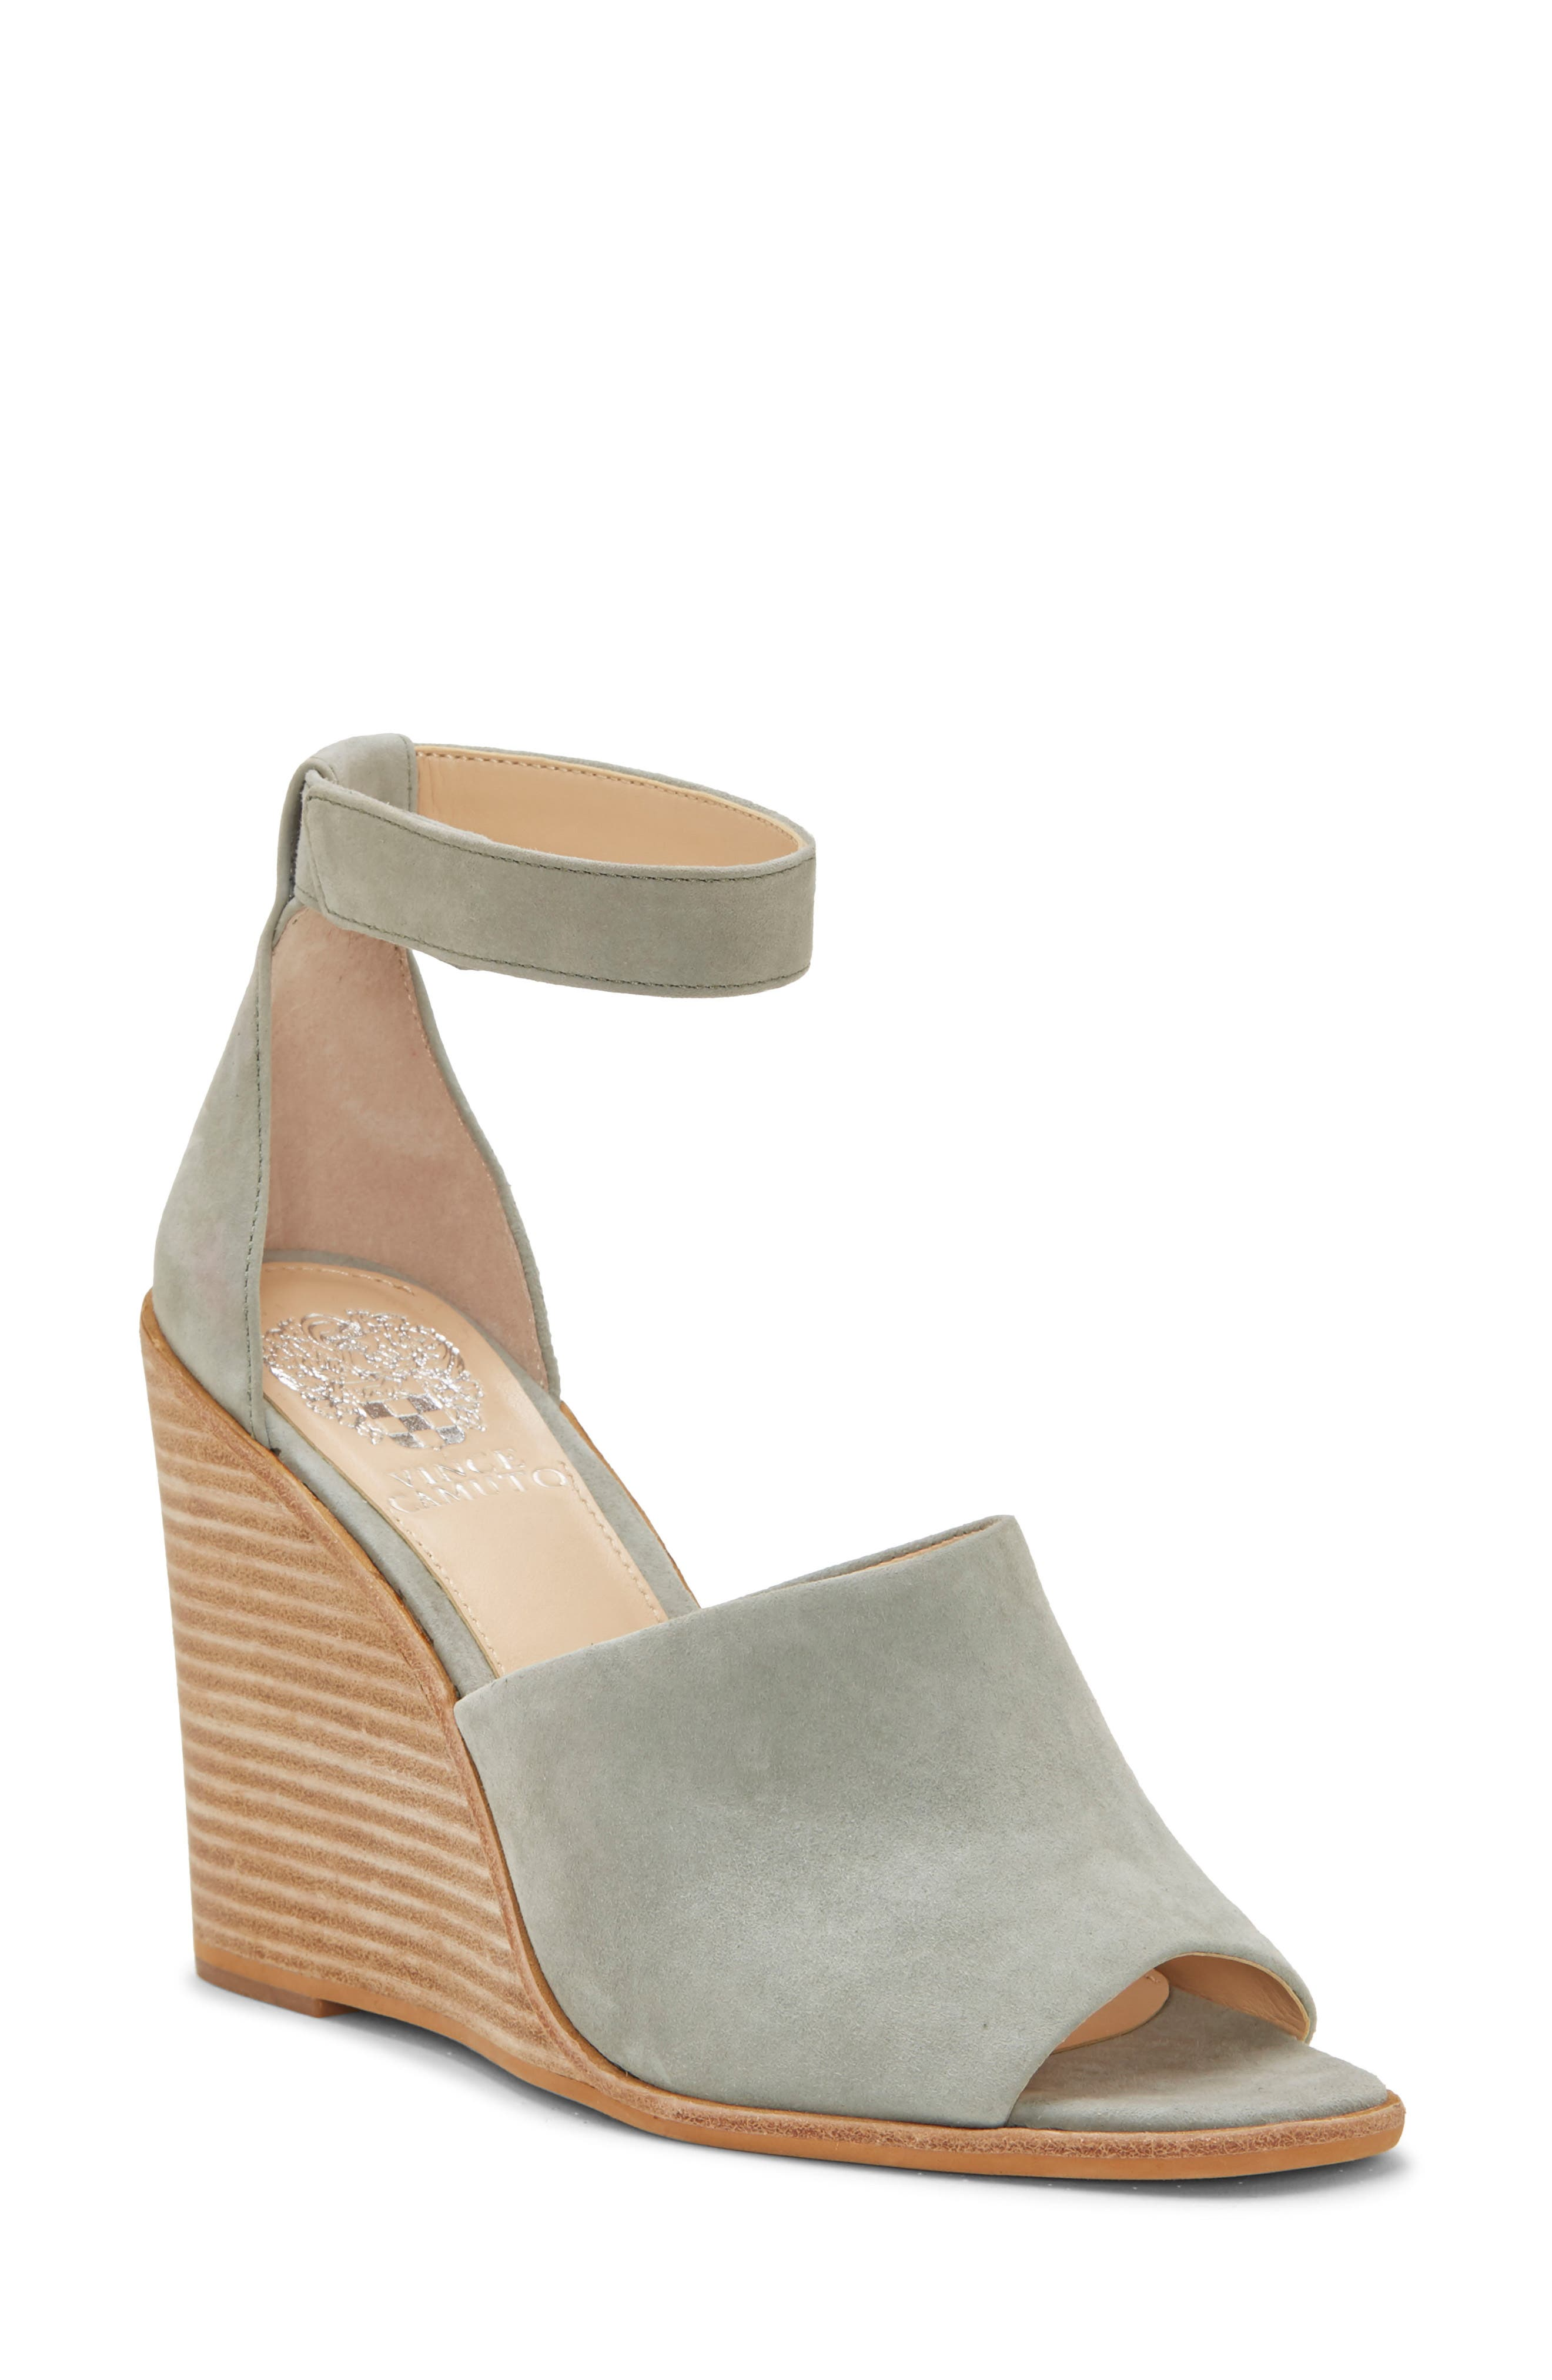 Vince Camuto Deedriana Wedge Sandal- Green